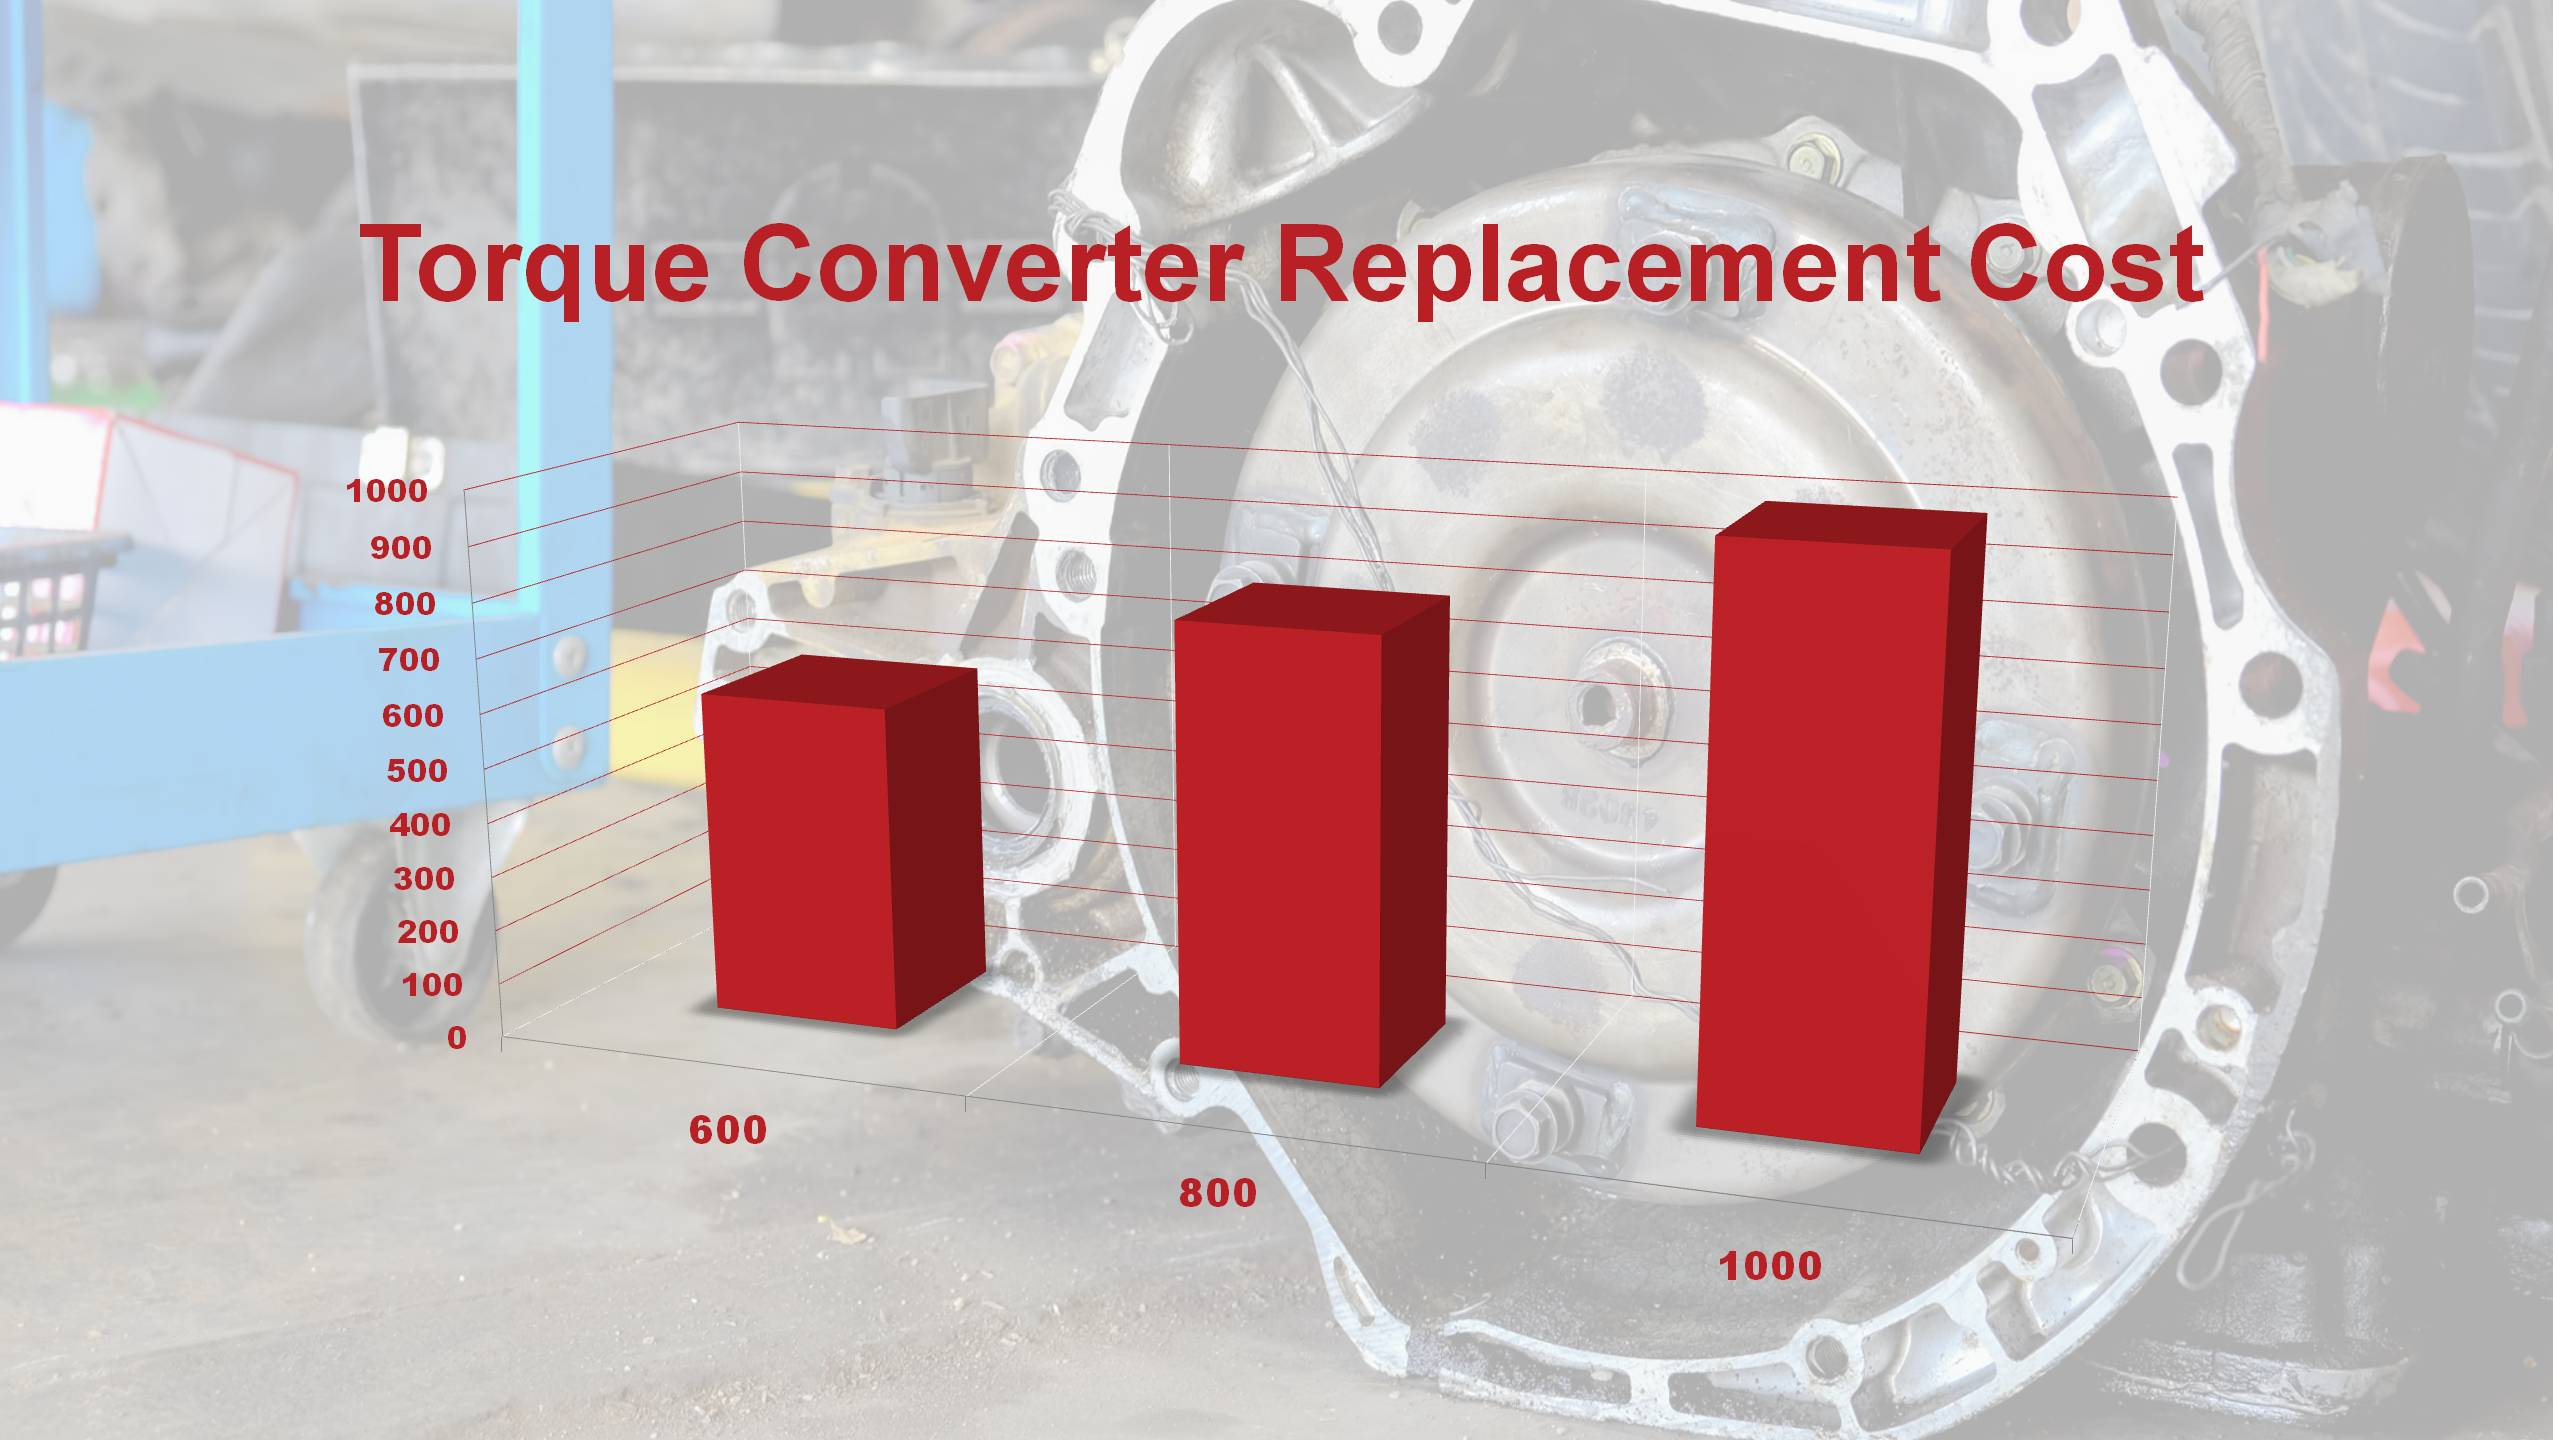 How Much Does Torque Converter Replacement Cost